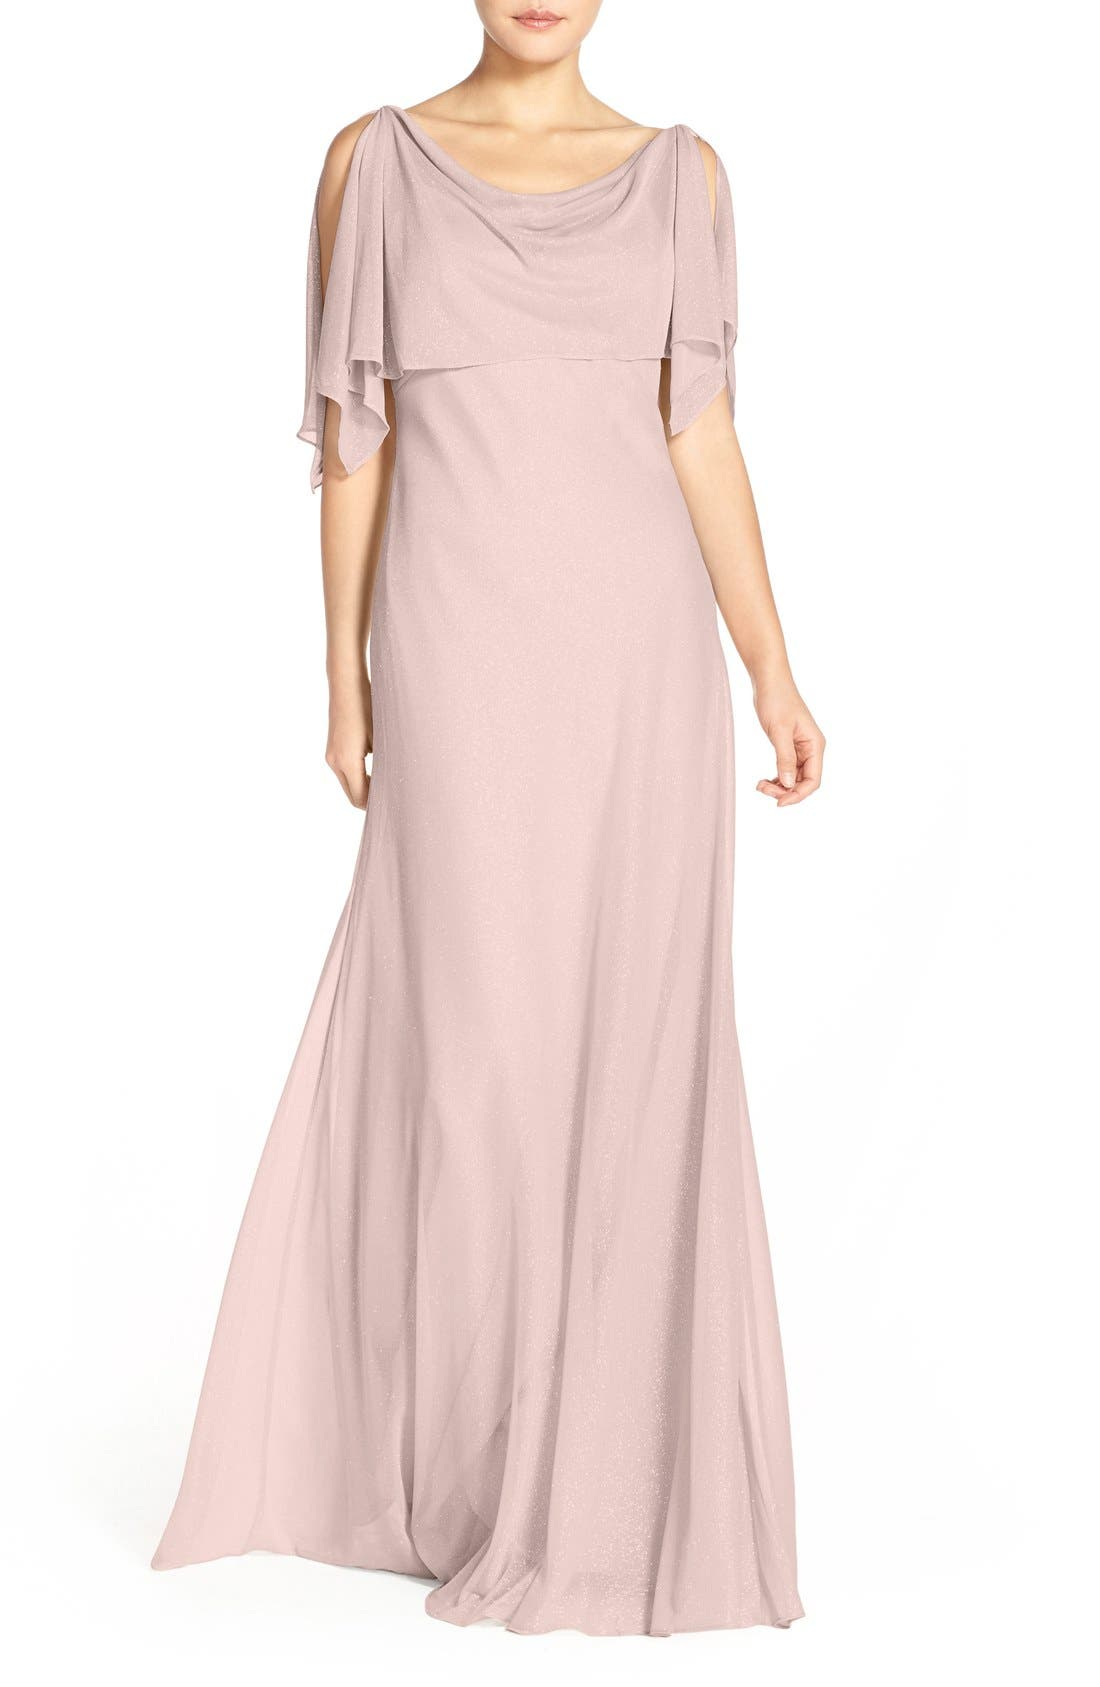 JENNY YOO 'Devon' Glitter Knit Gown with Detachable